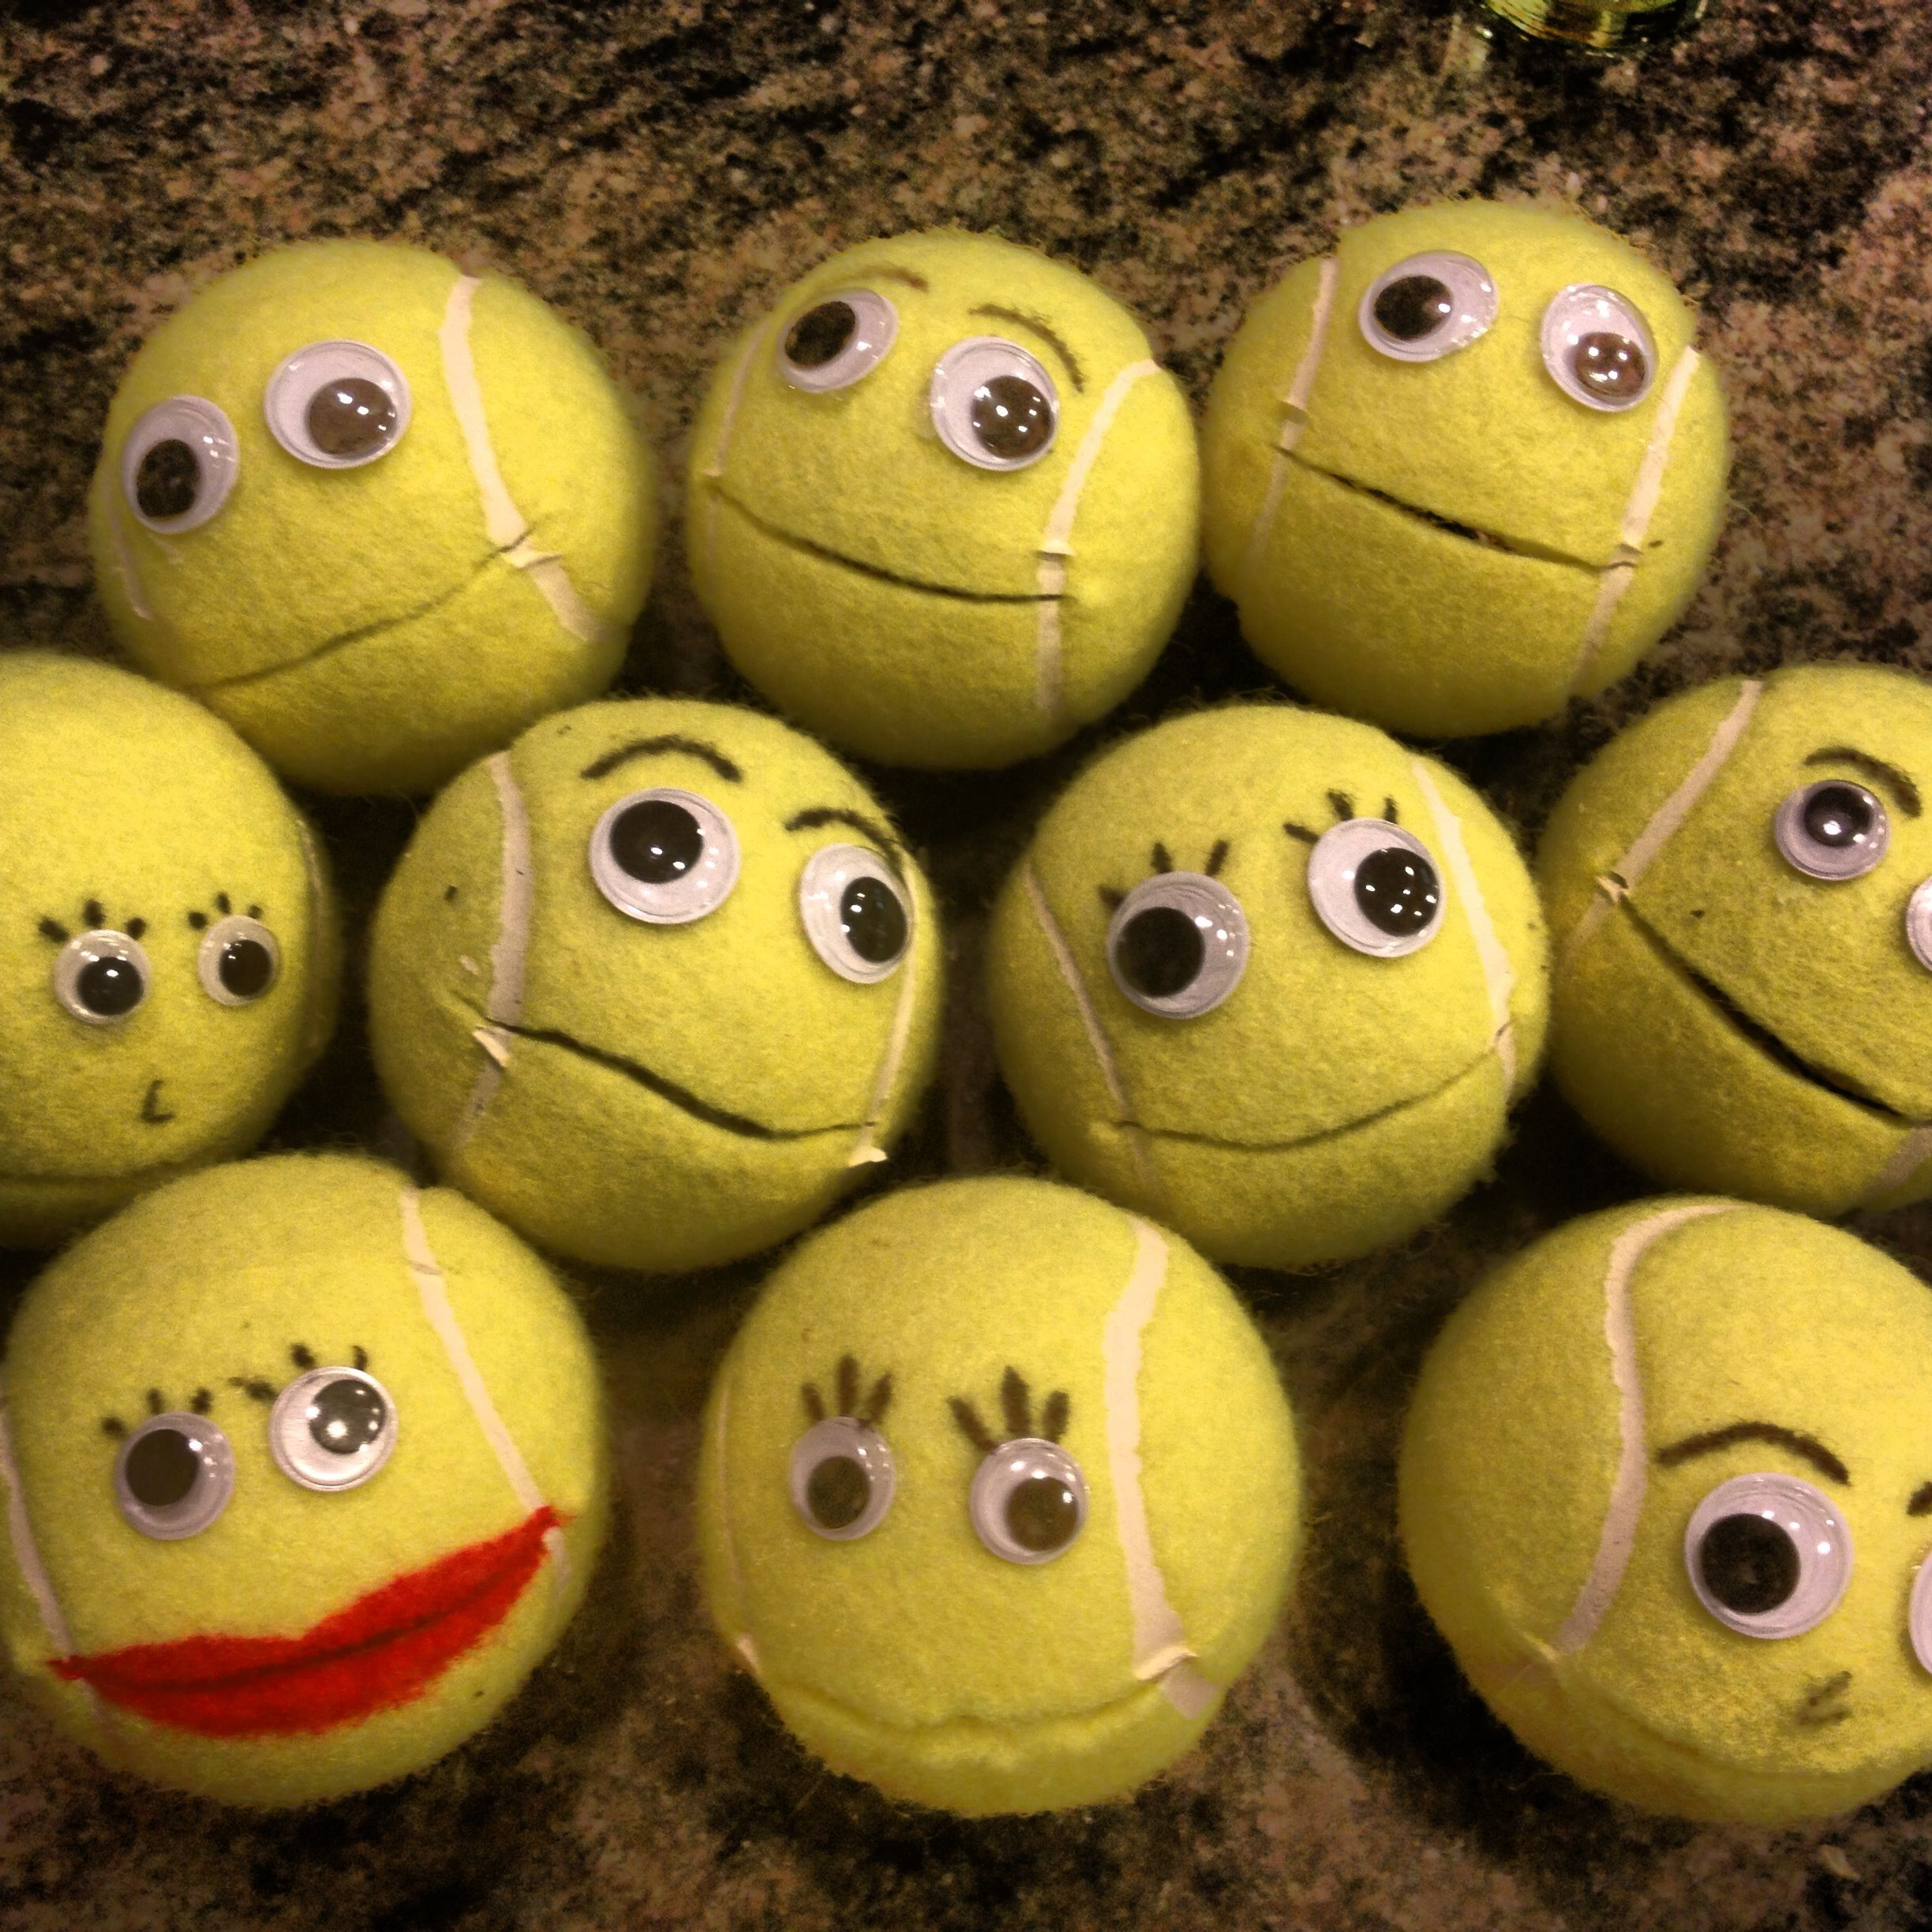 Occupational Therapy Hand Strengthening Activity Have Kids Feed The Tennis Ball Using Beads Or